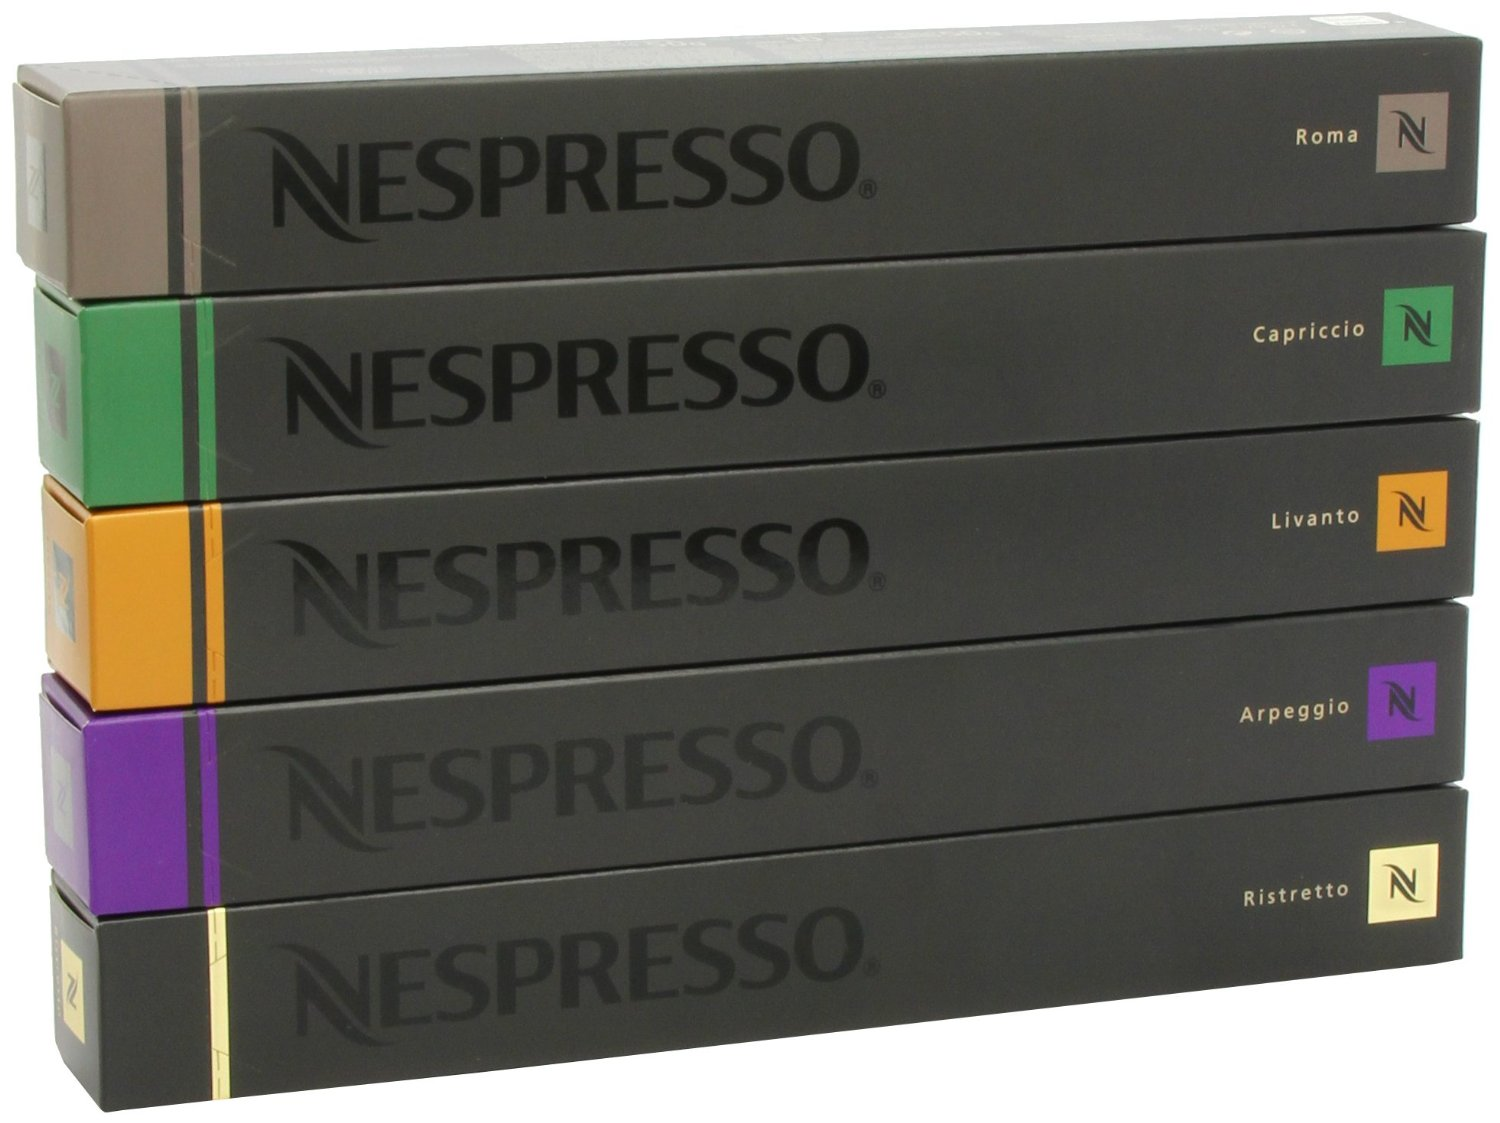 where to buy nespresso capsules nespresso coffee and tea variety packs super. Black Bedroom Furniture Sets. Home Design Ideas